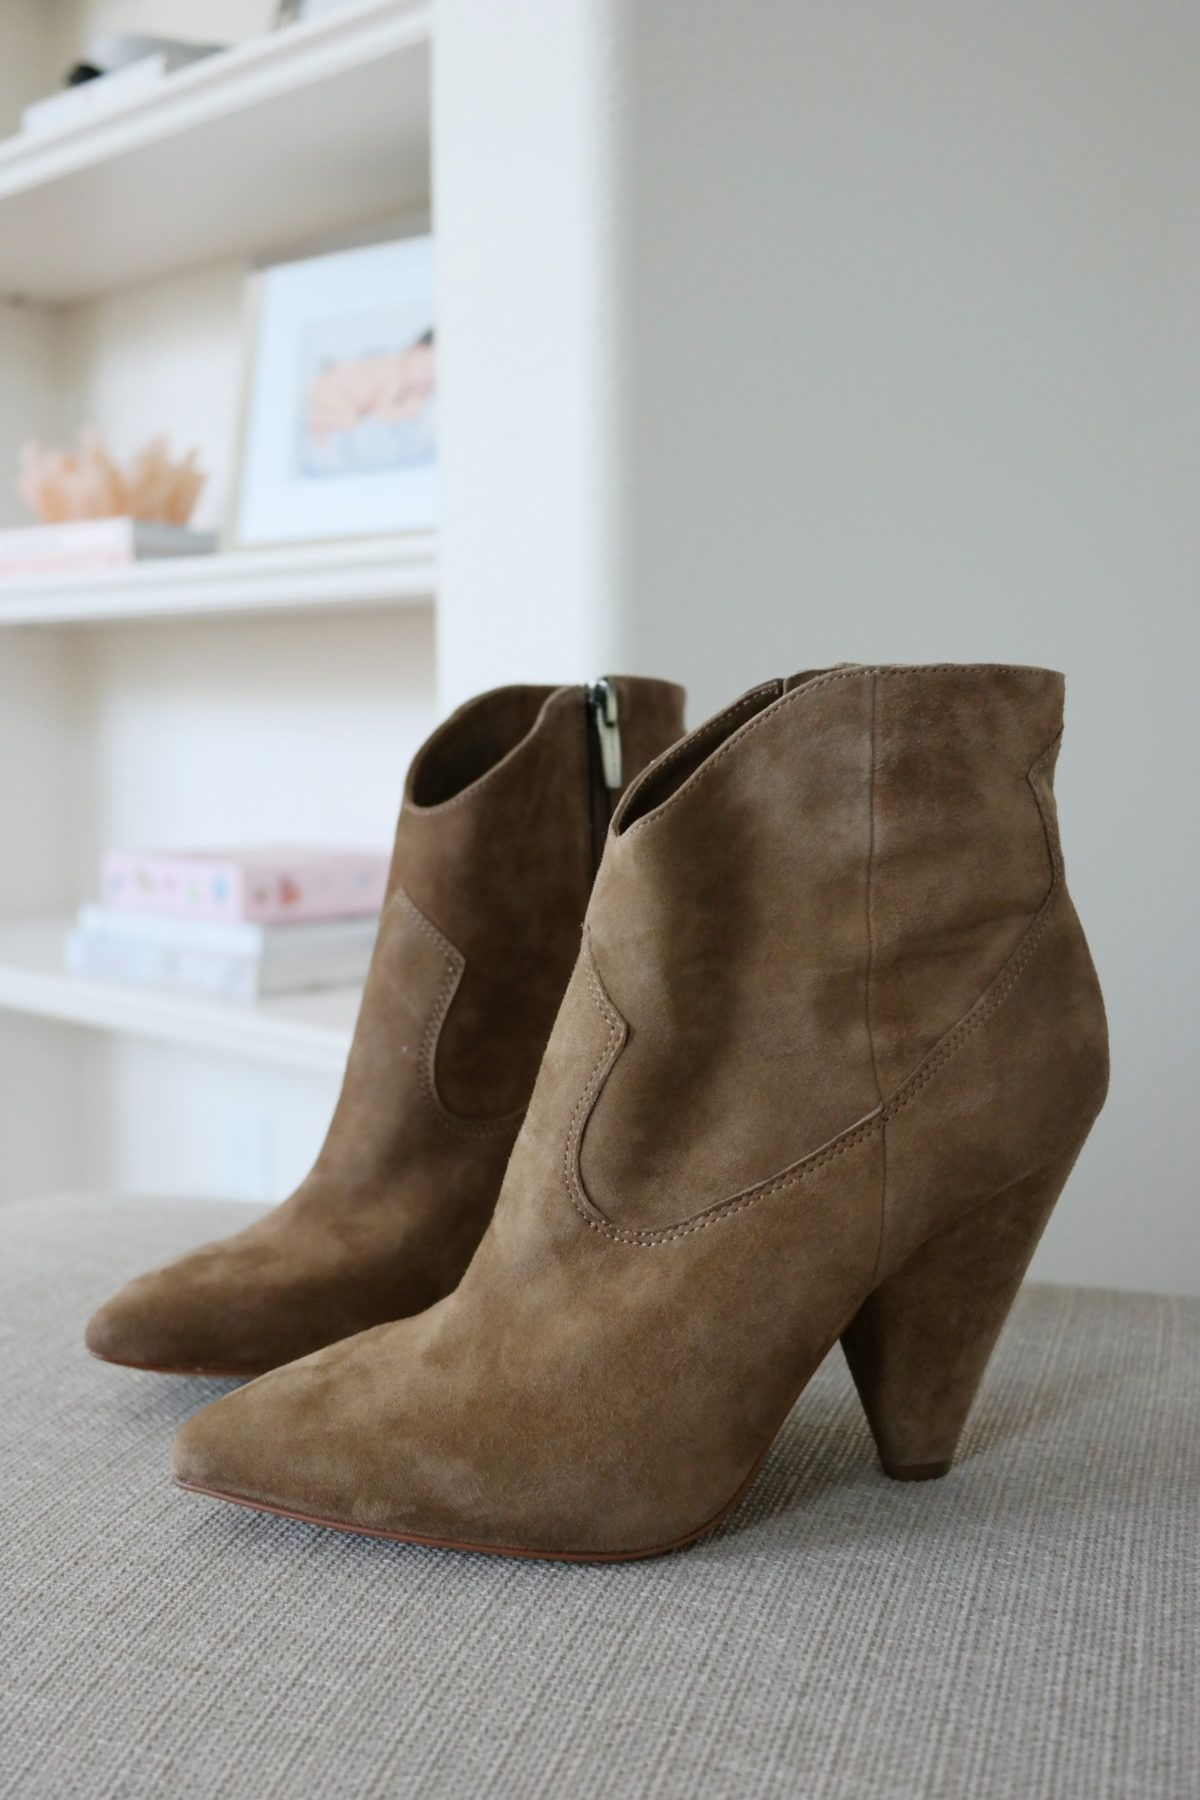 c833838bf5a Vince Camuto Movinta Bootie Treehouse Suede Color